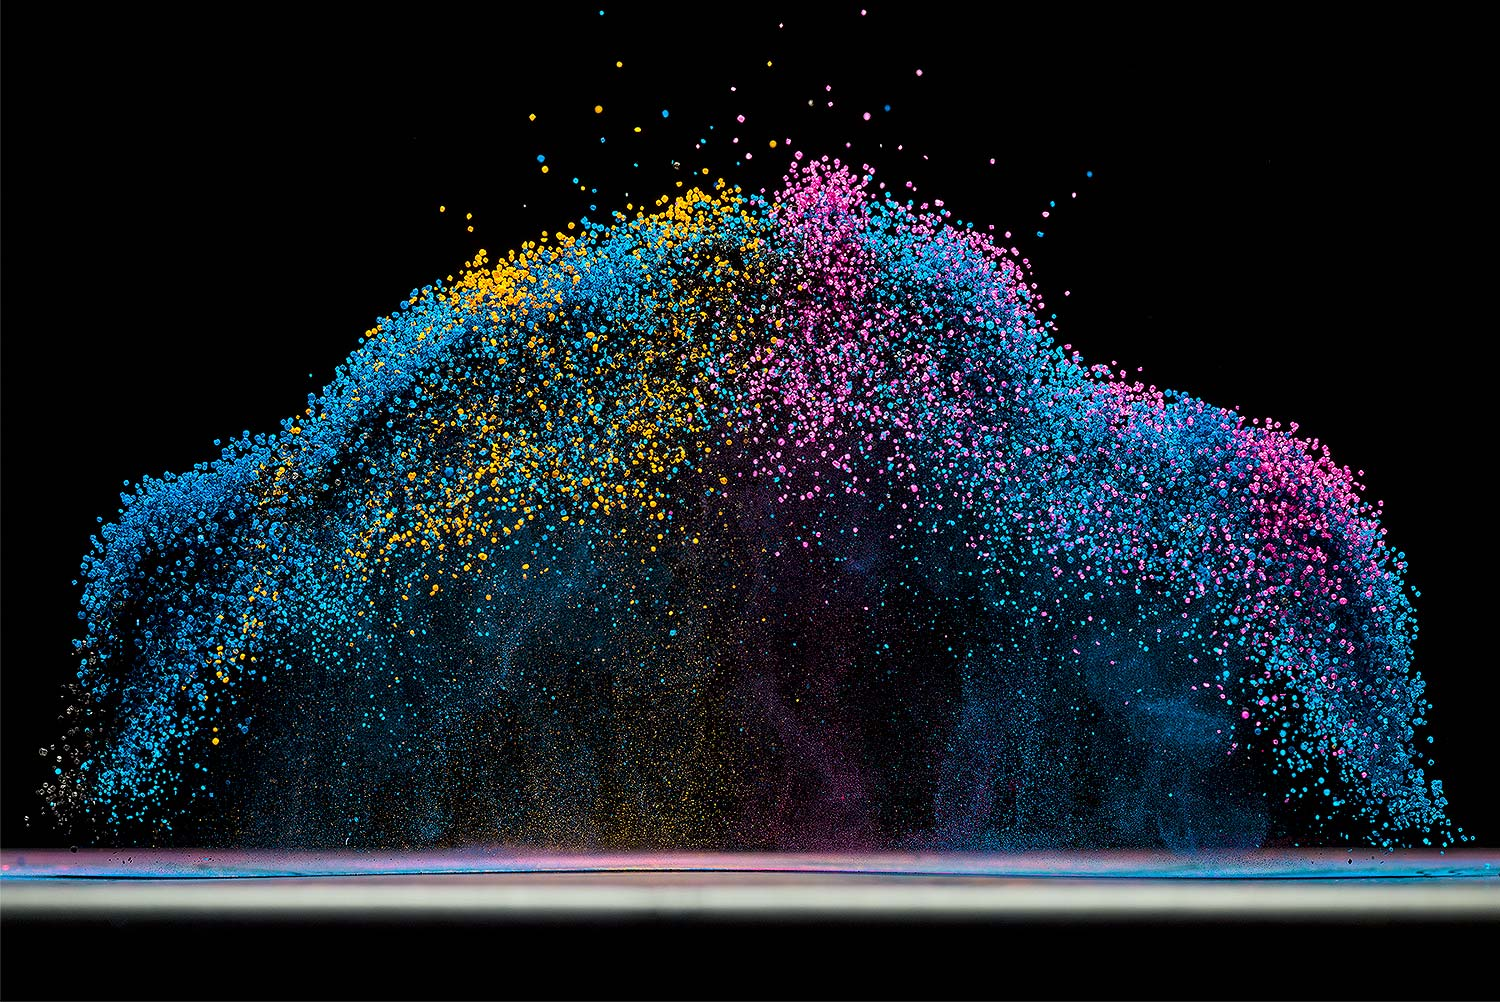 Dancing colors, making sound waves visible